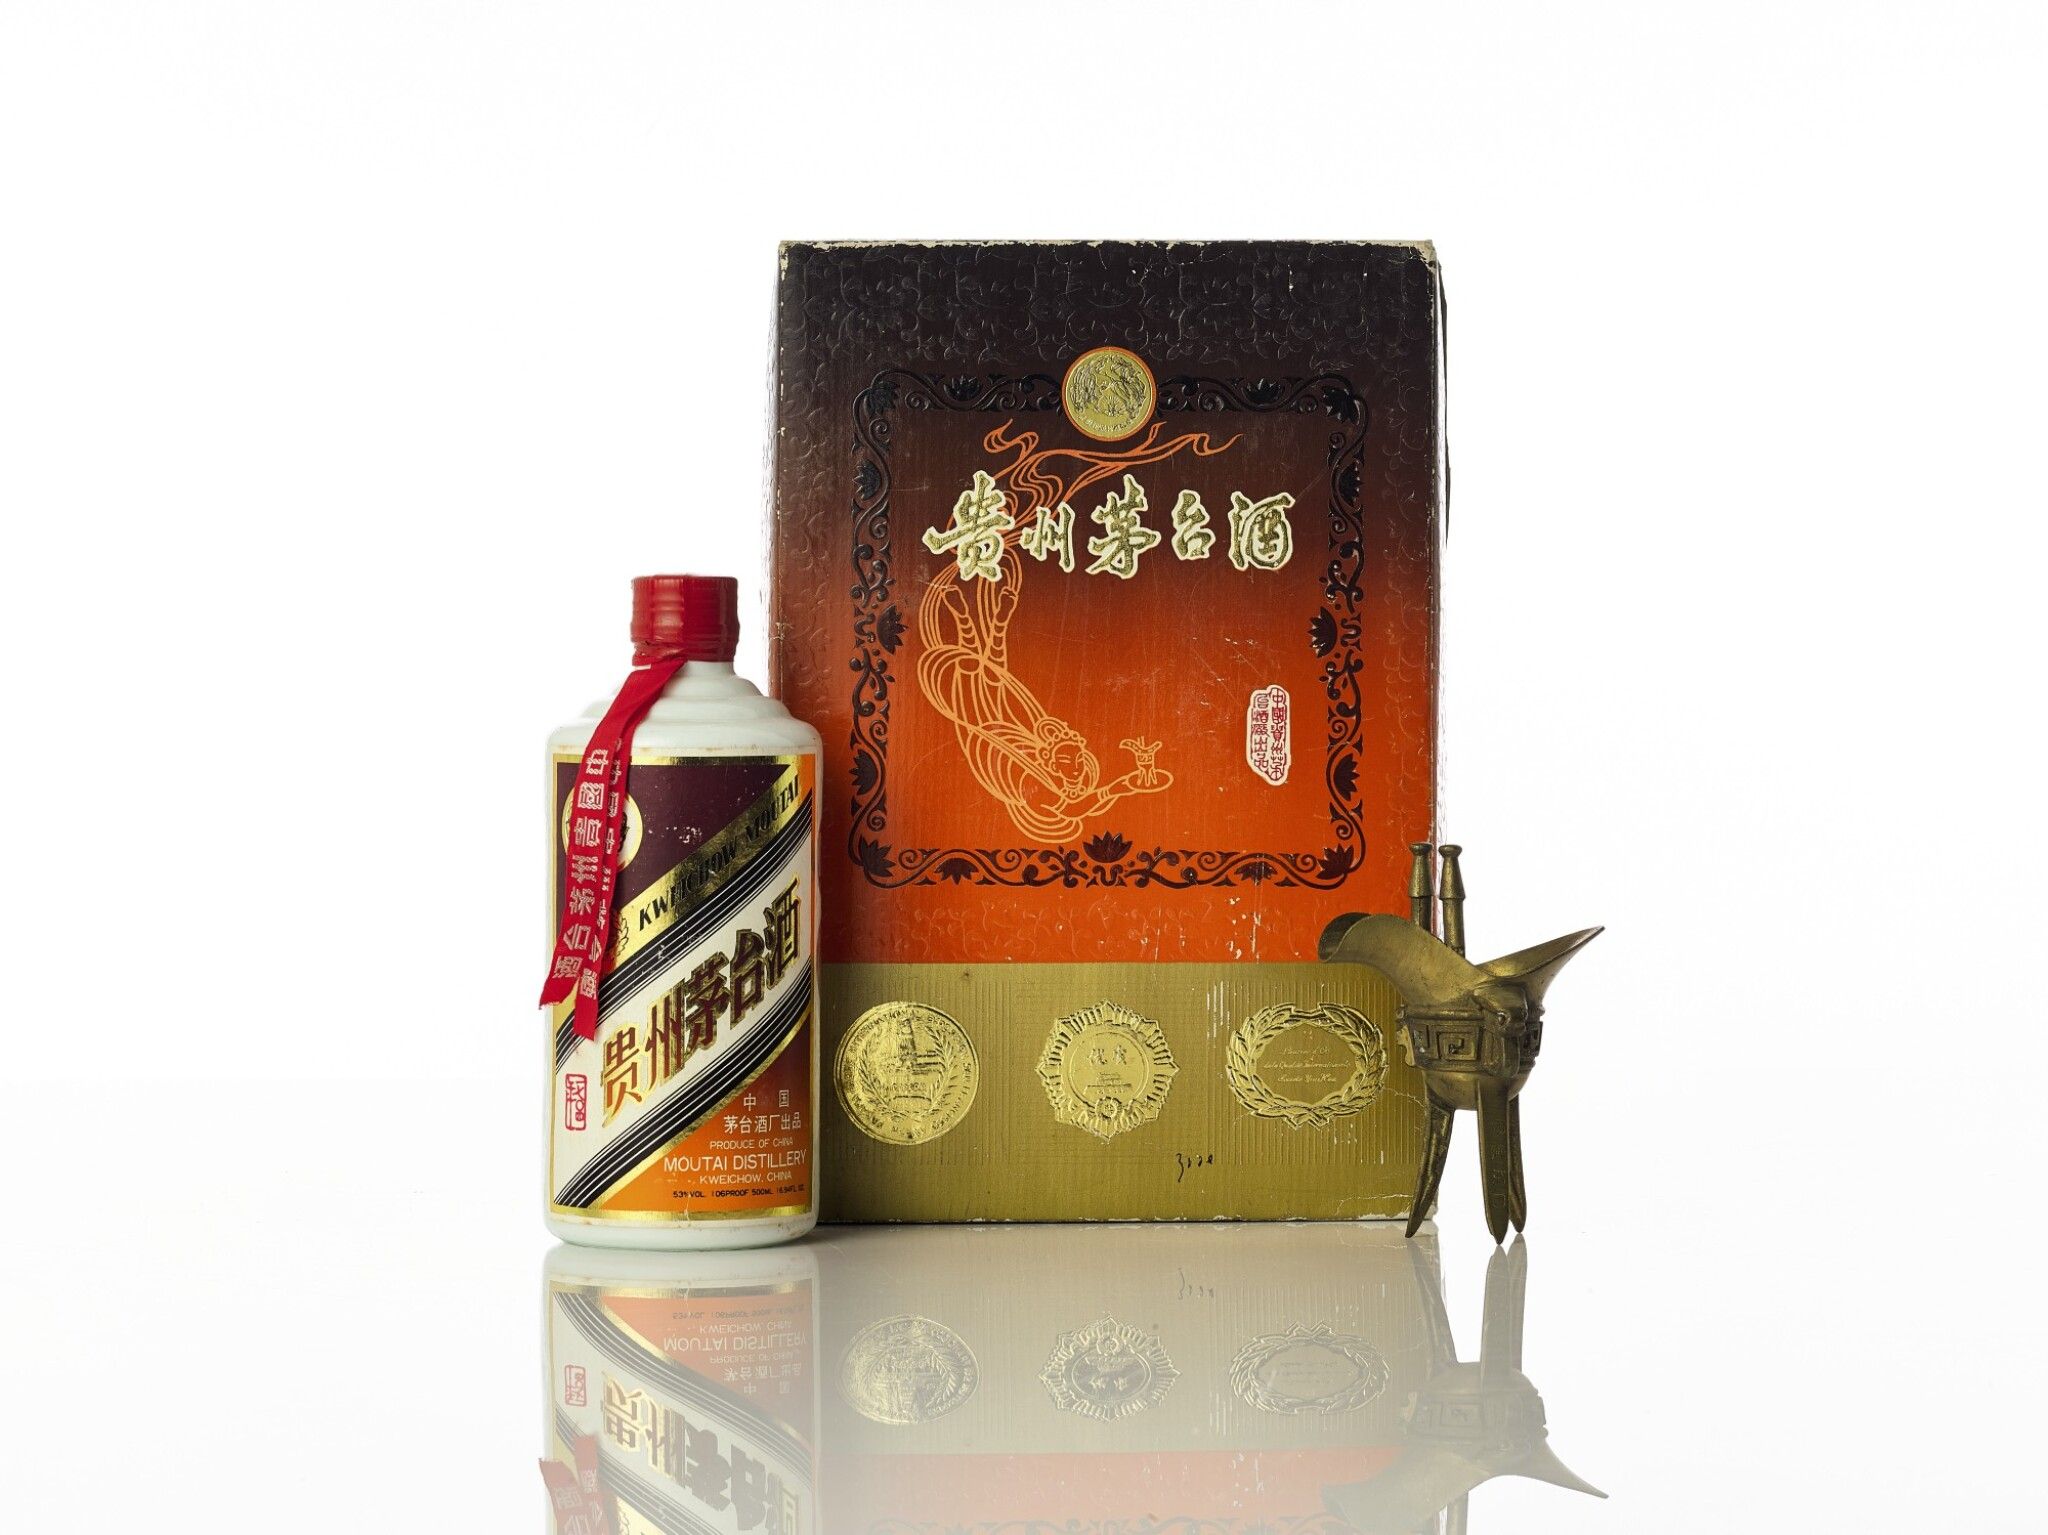 View full screen - View 1 of Lot 5437. 1704 飛天牌珍品貴州茅台酒 Kweichow Flying Fairy Precious Moutai 1704 NV (1 BT50).